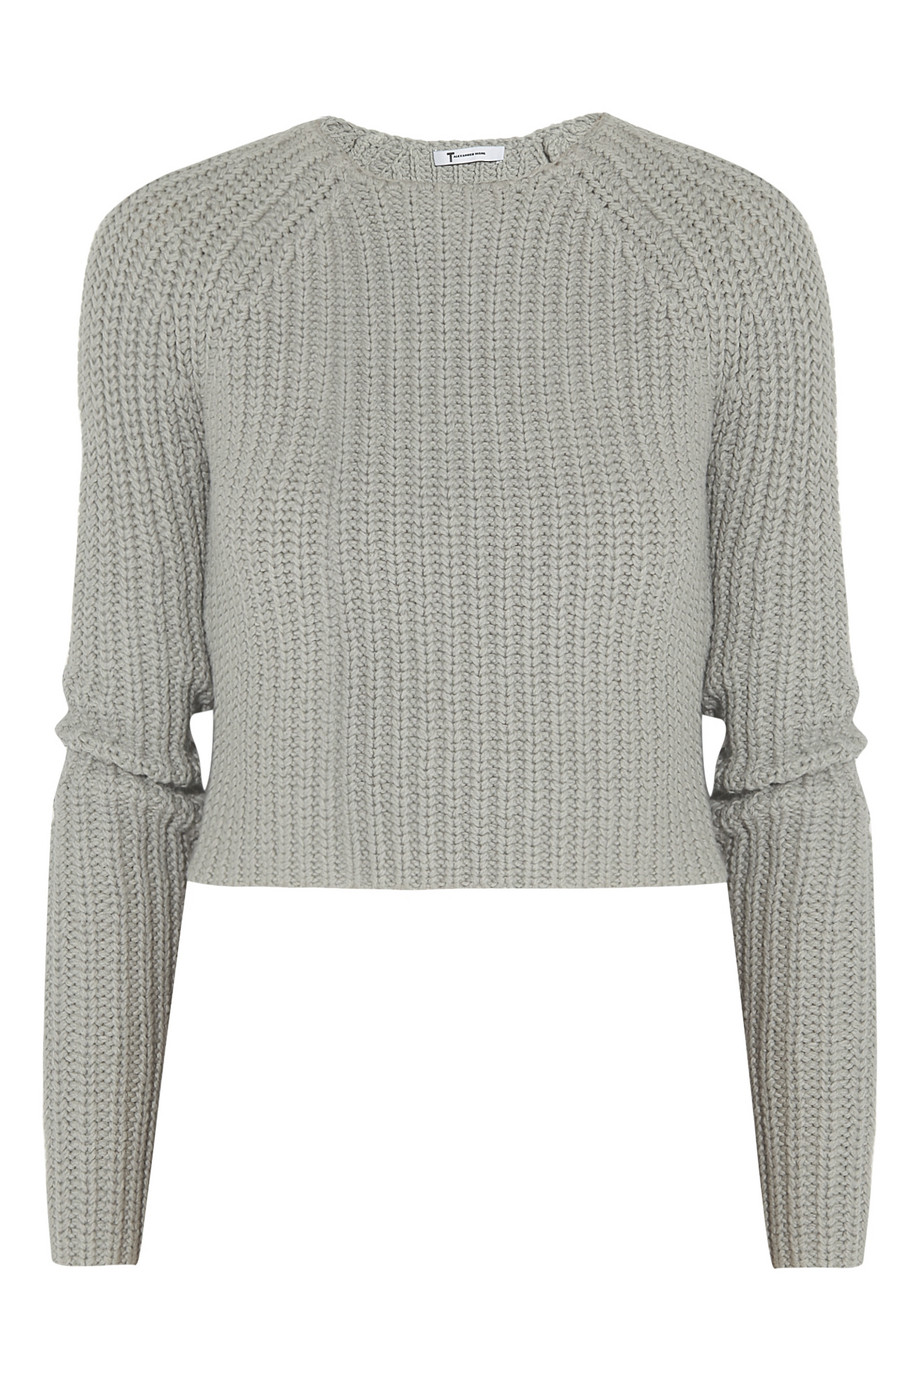 T by alexander wang Chunky Knit Cotton Blend Cropped Sweater in ...